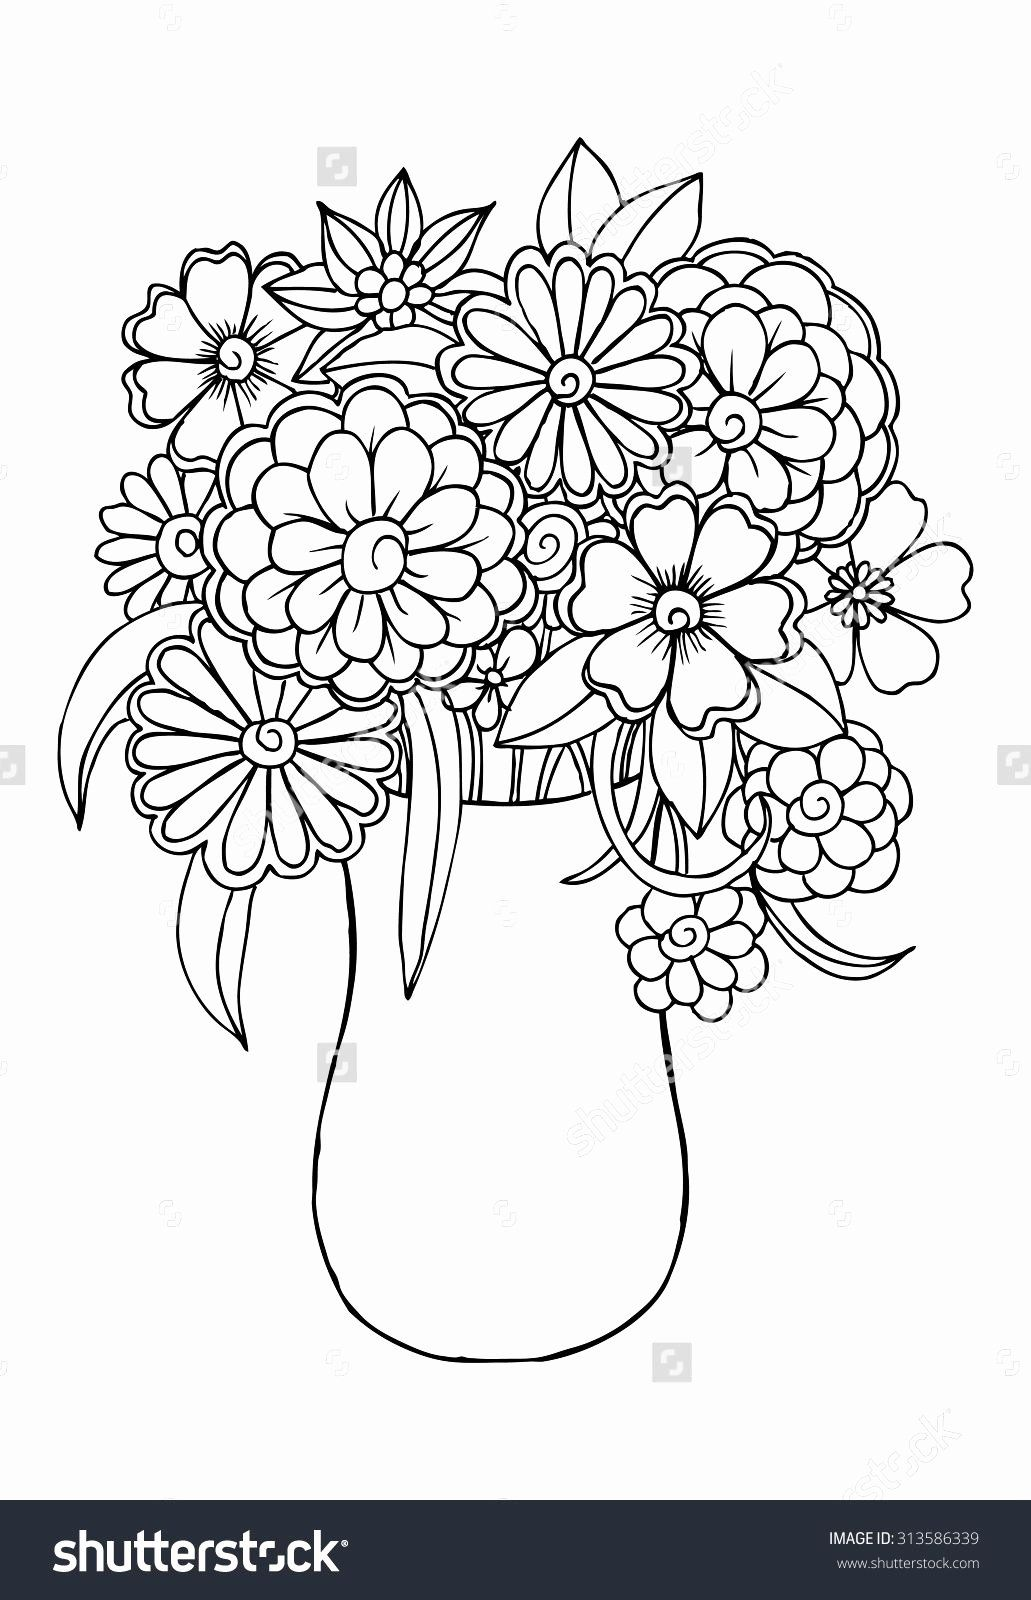 Coloring Pages Spring Flowers Flower Coloring Pages Coloring